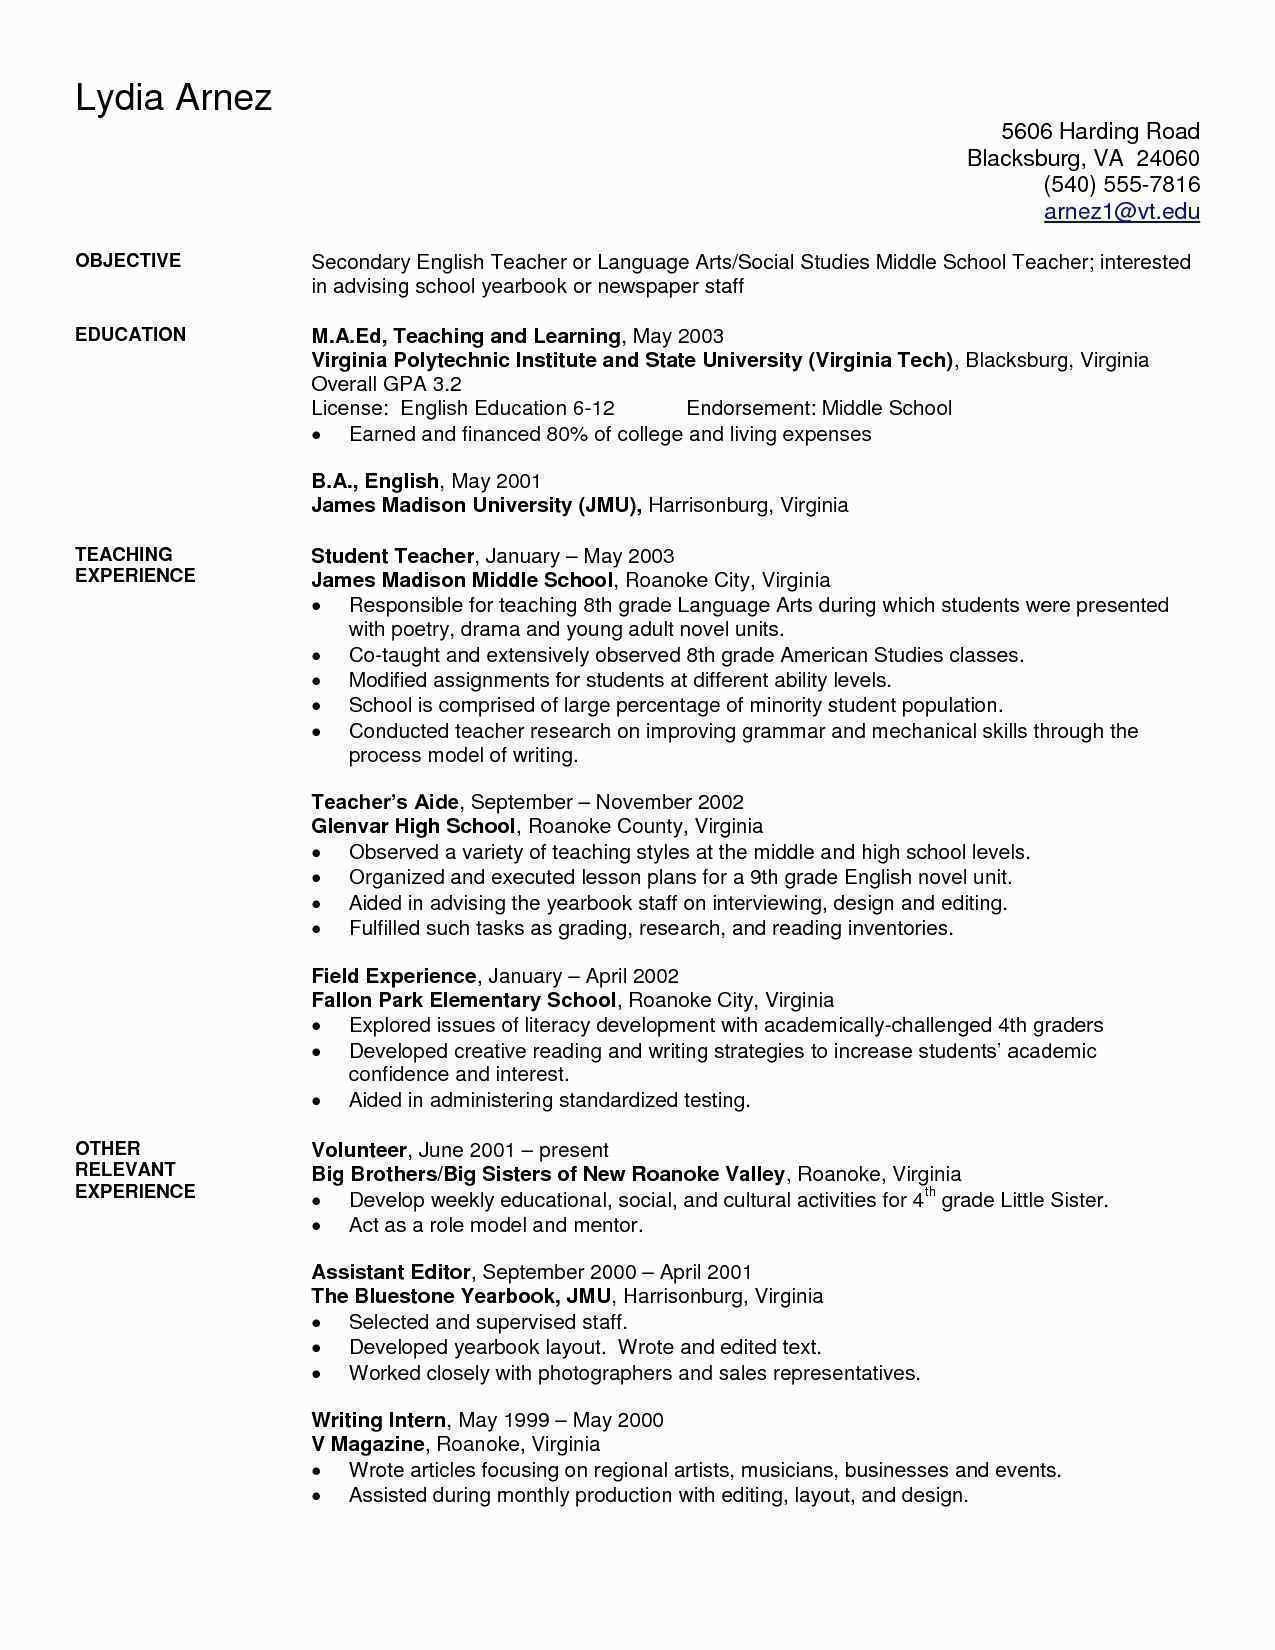 Professional Dance Resume Template - Cv Resume Fresh Dance Cv Template Fresh How to Make A Dance Resume